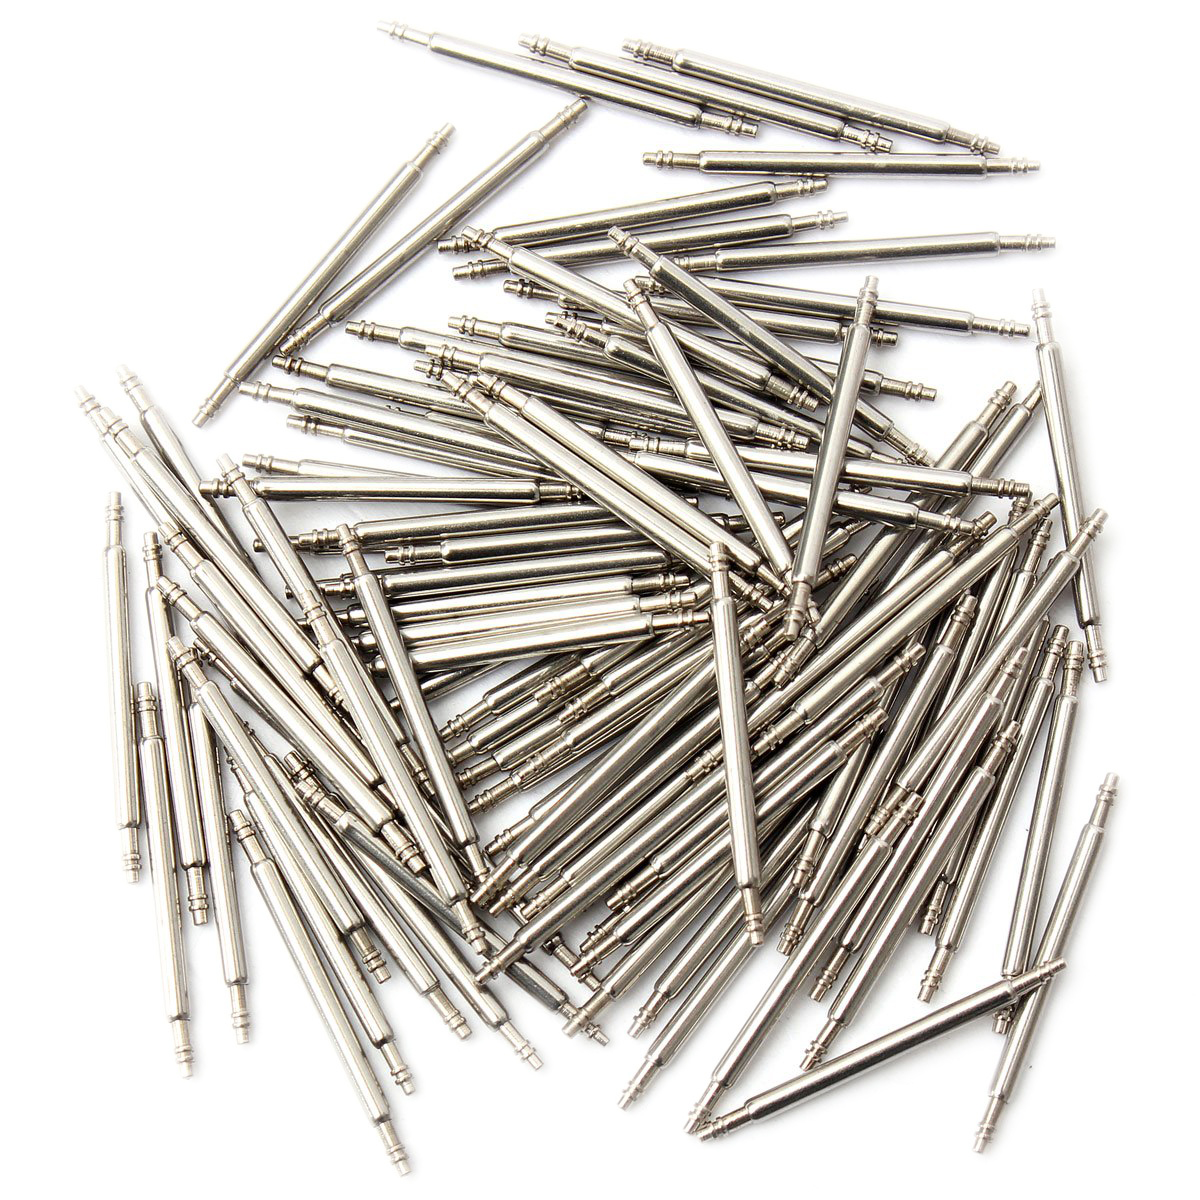 100 Pcs Spring Bar Stem Wristwatch Clock Repair Remover Tool 21mm